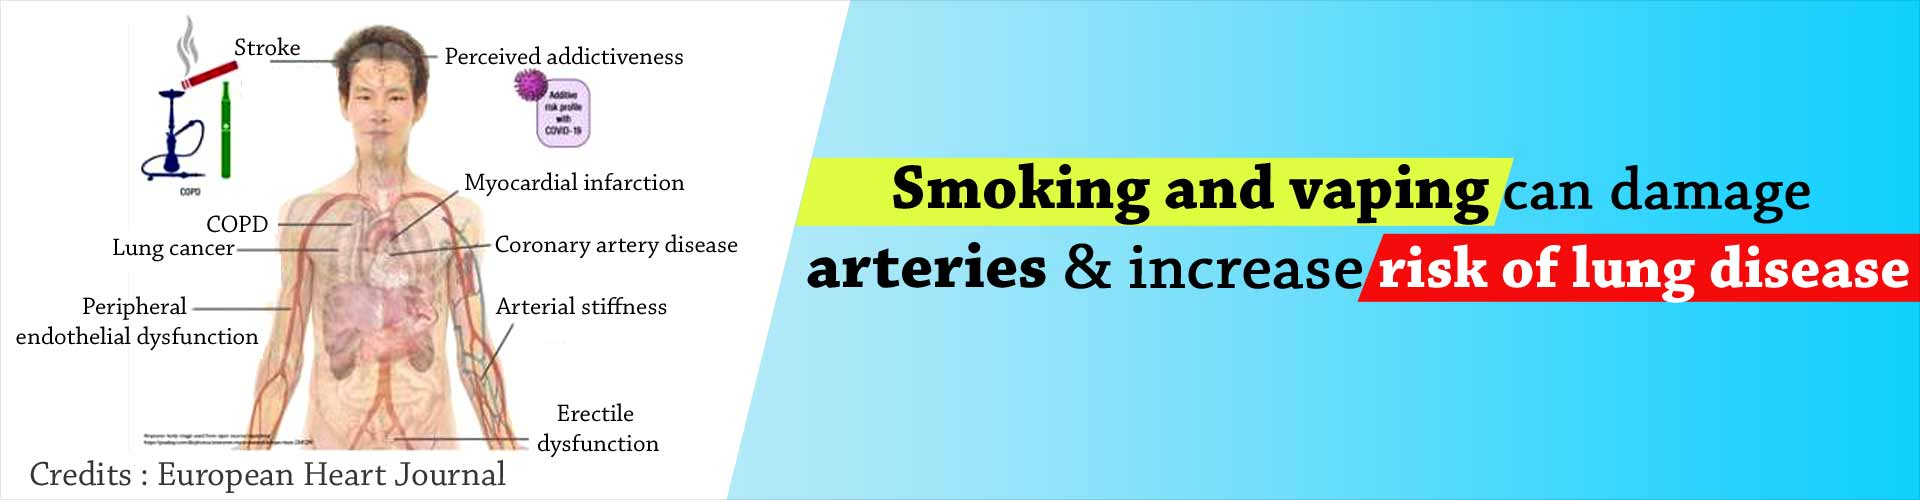 World's First Comparison of Effects of 3 Forms of Smoking and Vaping on Human Health